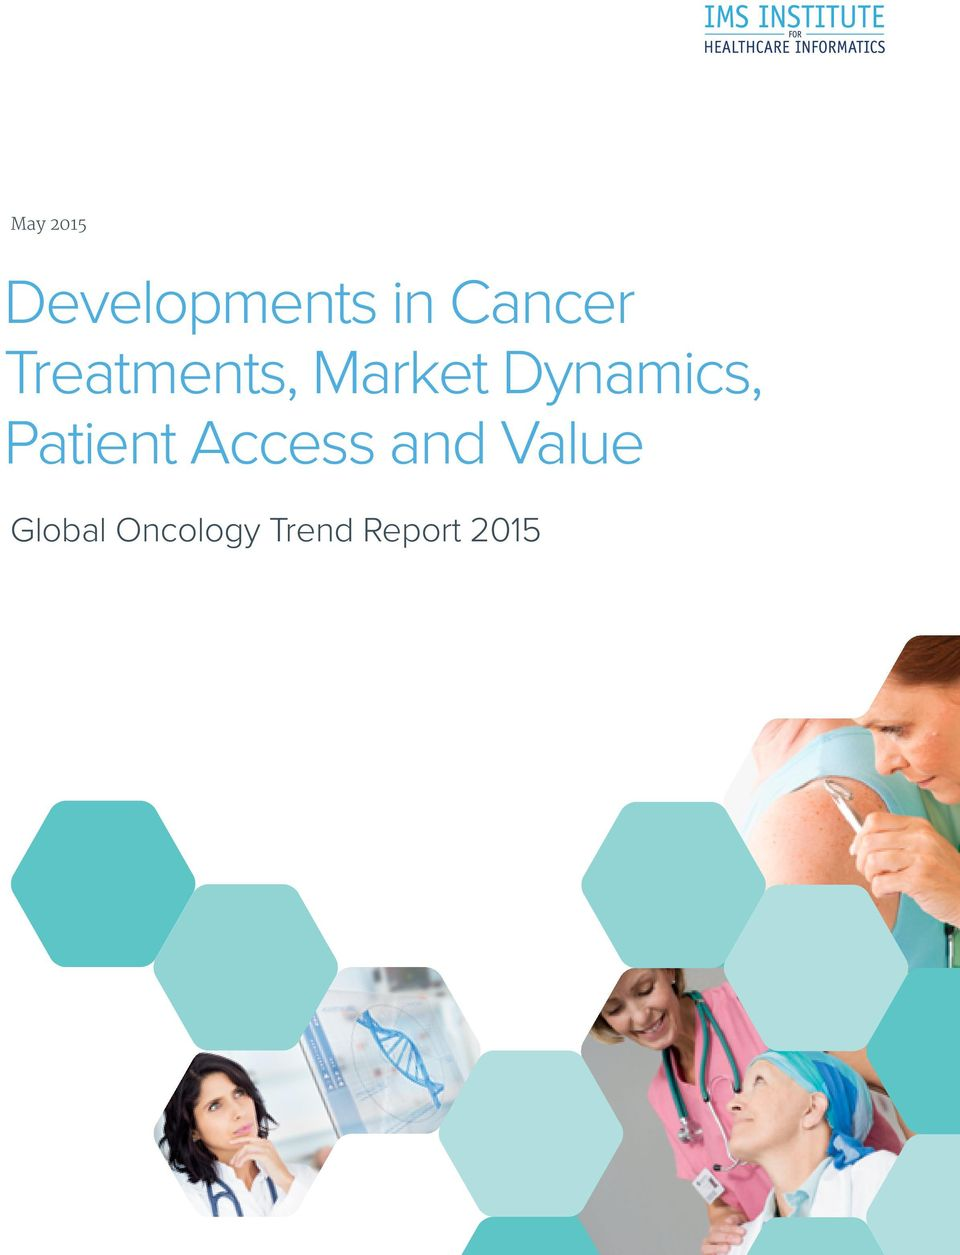 Dynamics, Patient Access and